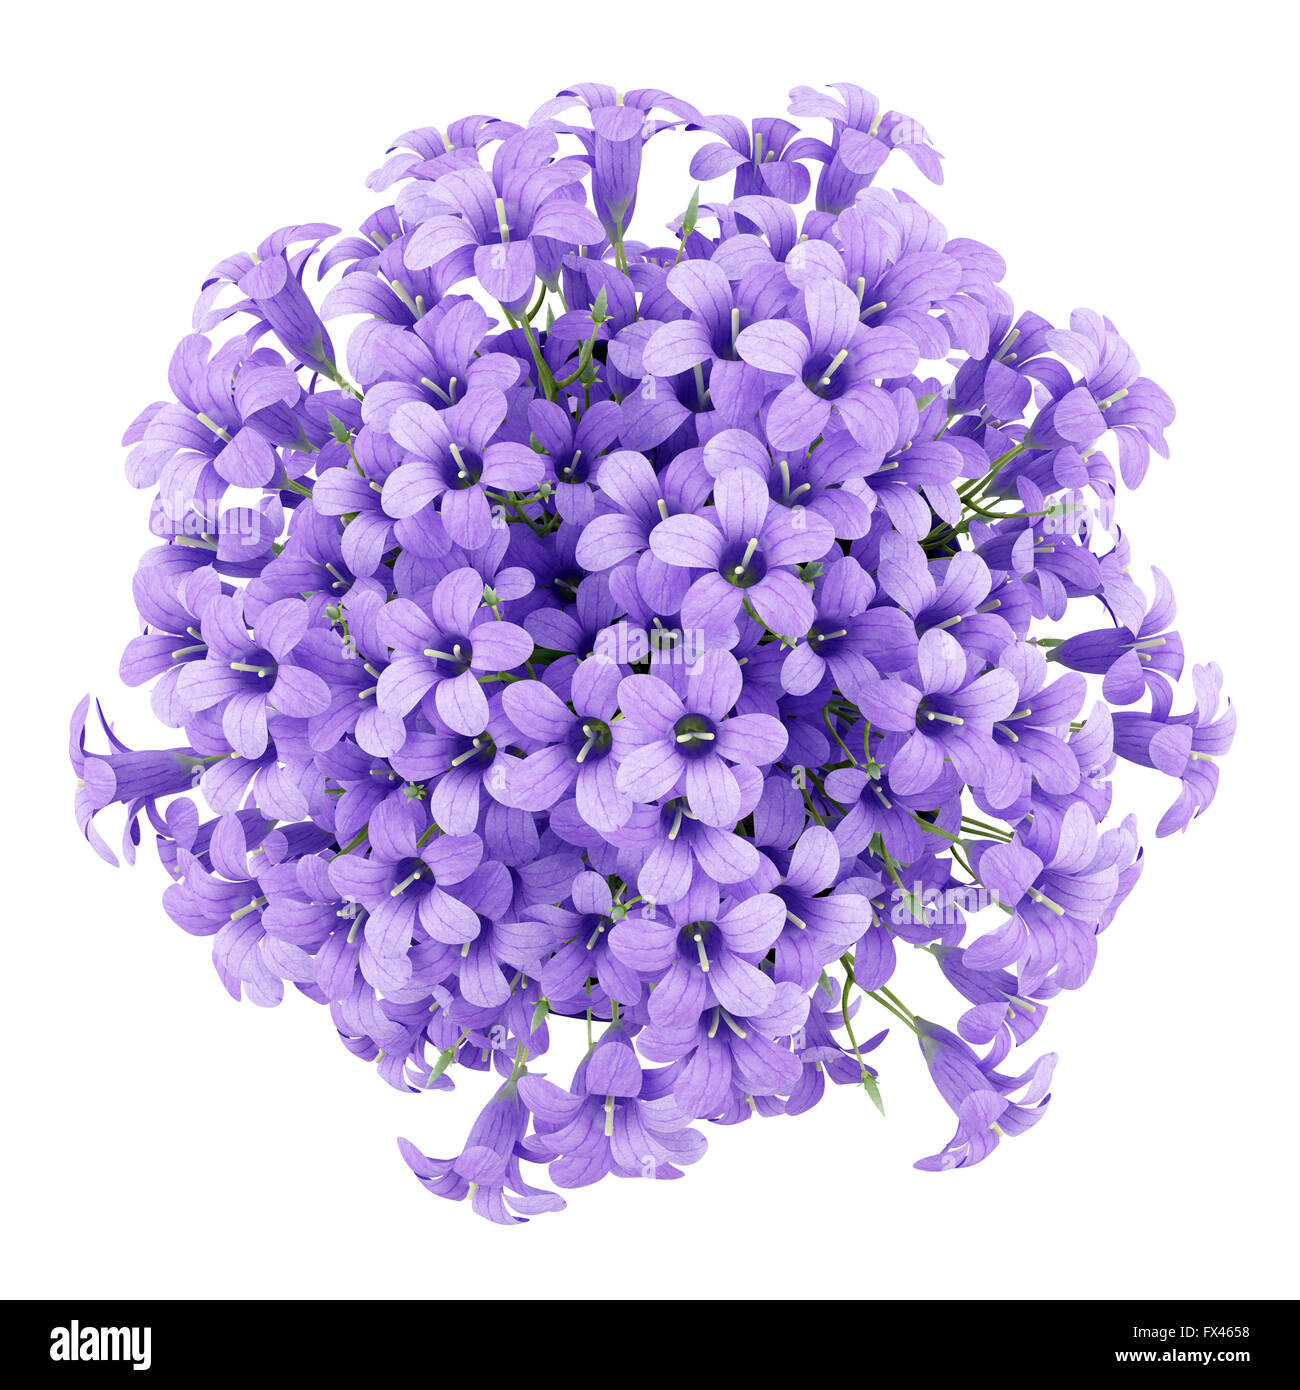 Top view of purple flowers in pot isolated on white background 3d top view of purple flowers in pot isolated on white background 3d illustration mightylinksfo